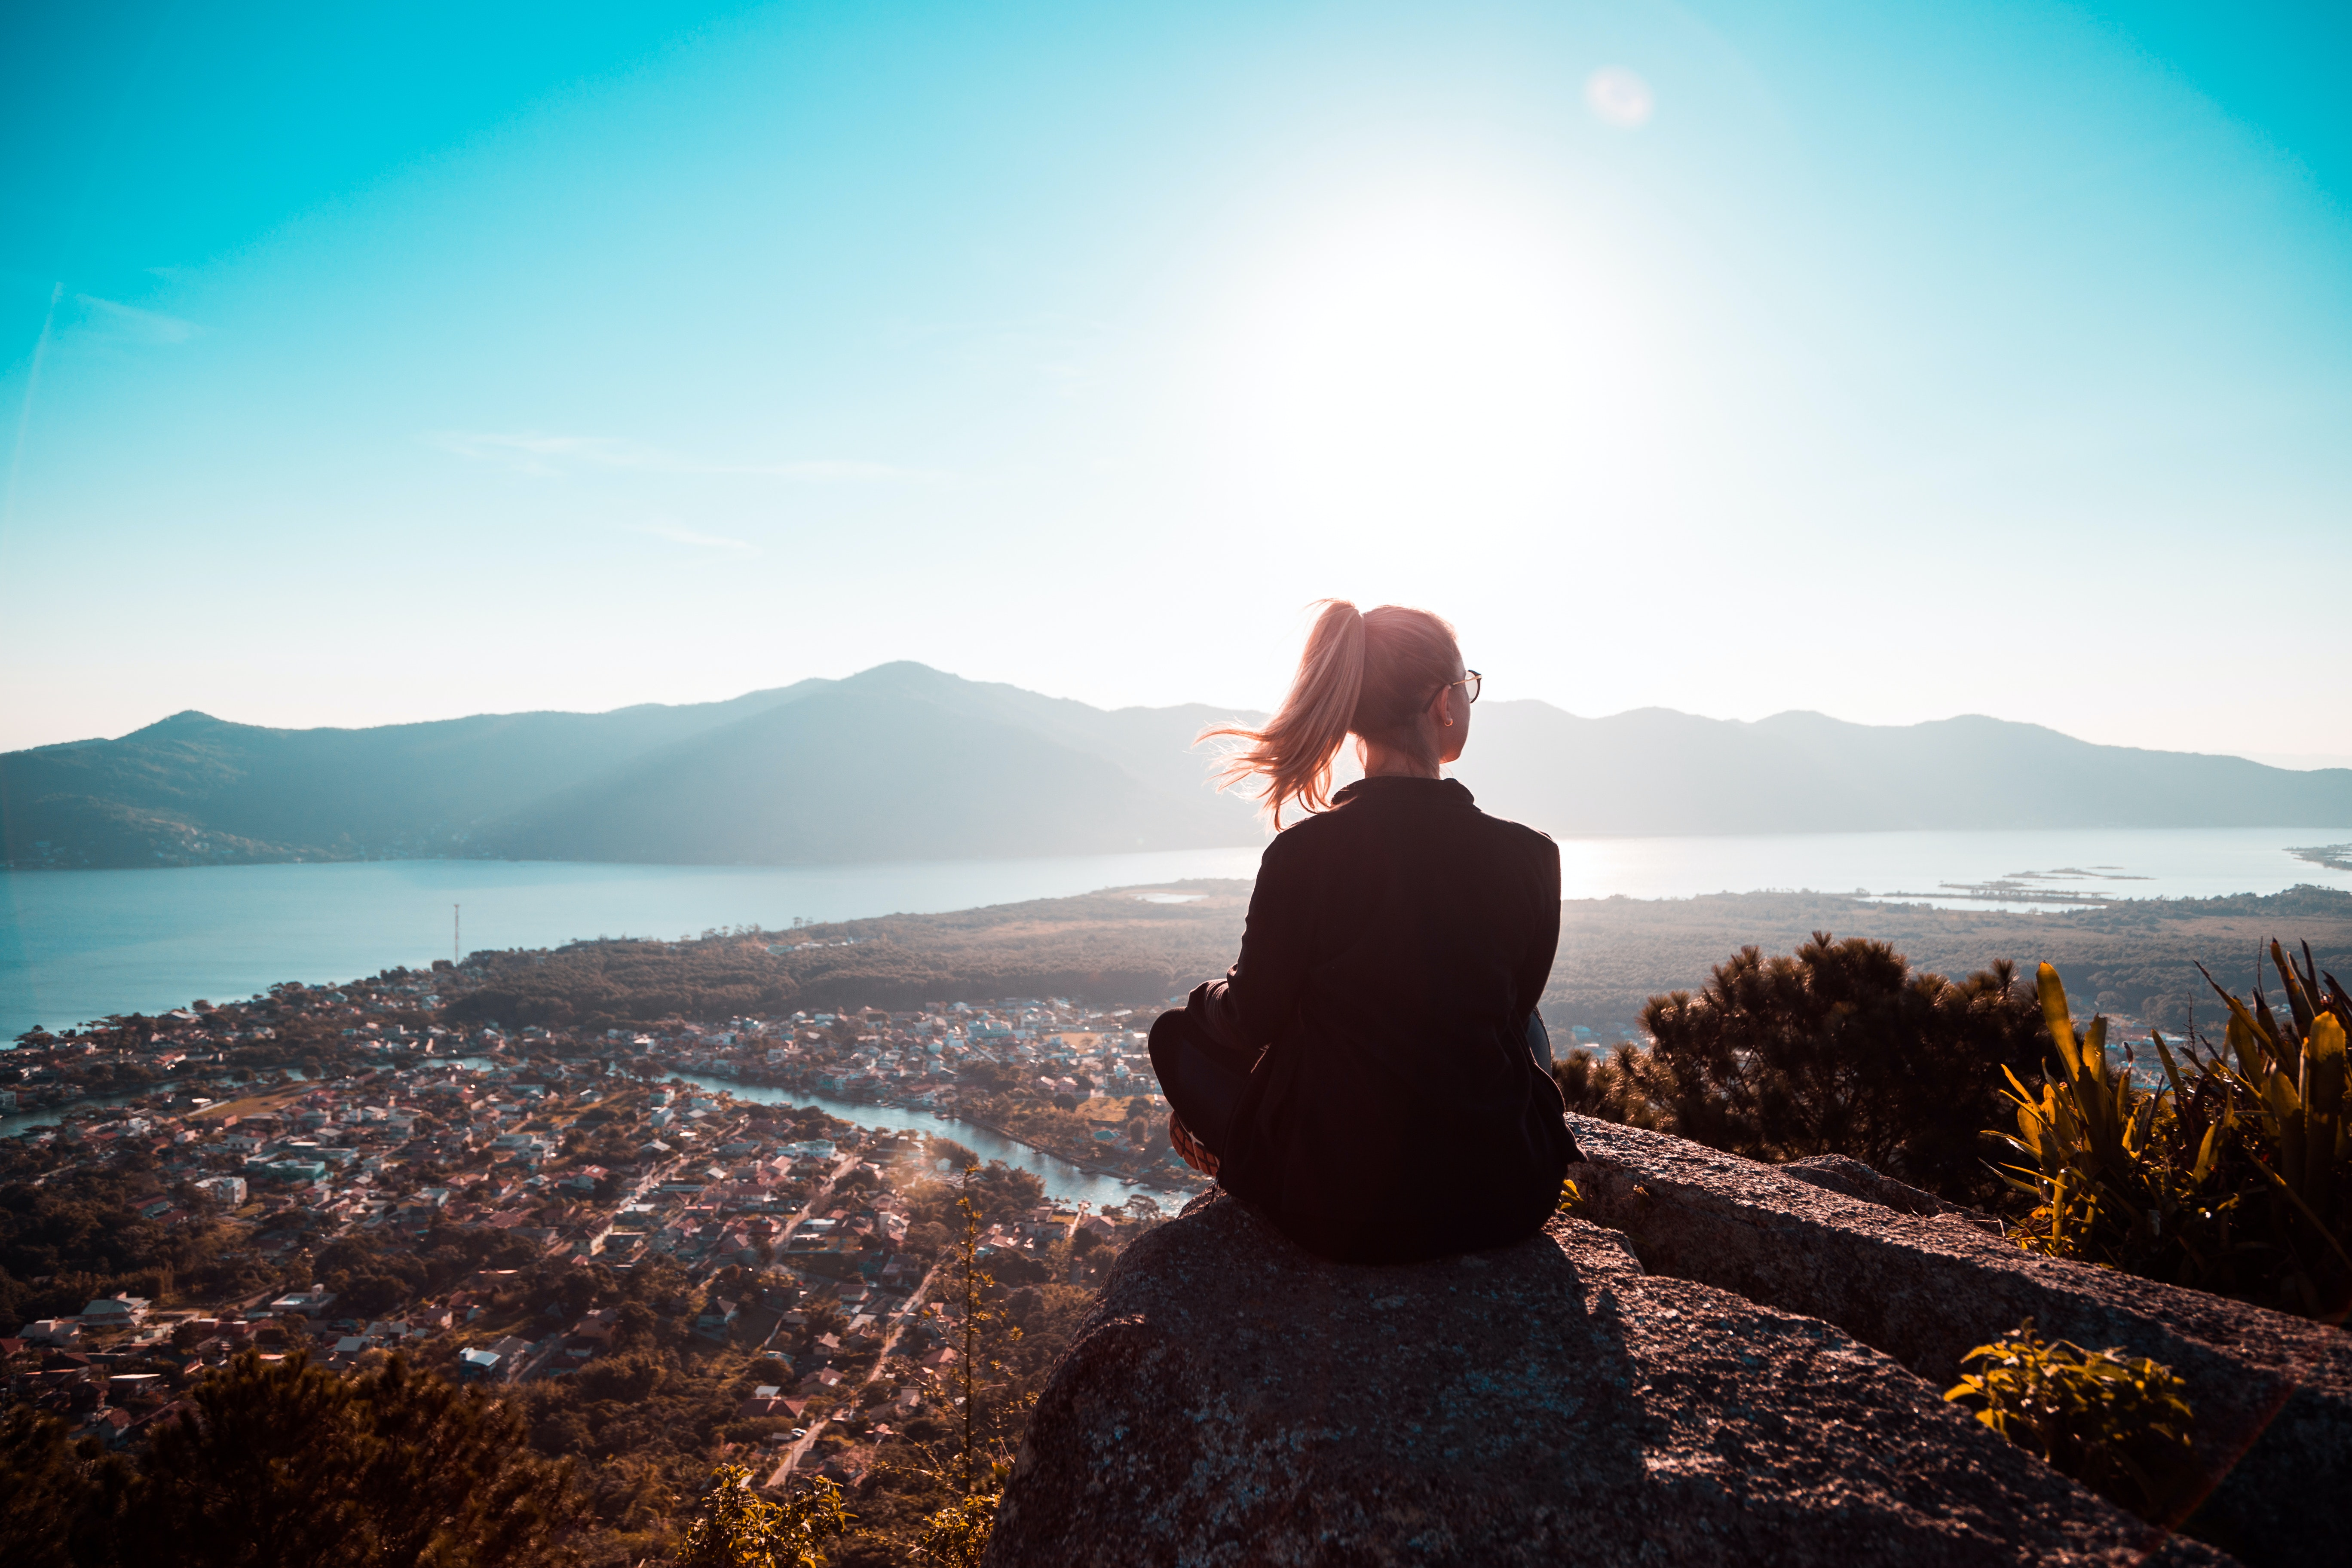 woman-sitting-at-the-edge-of-mountain-2261017.jpg